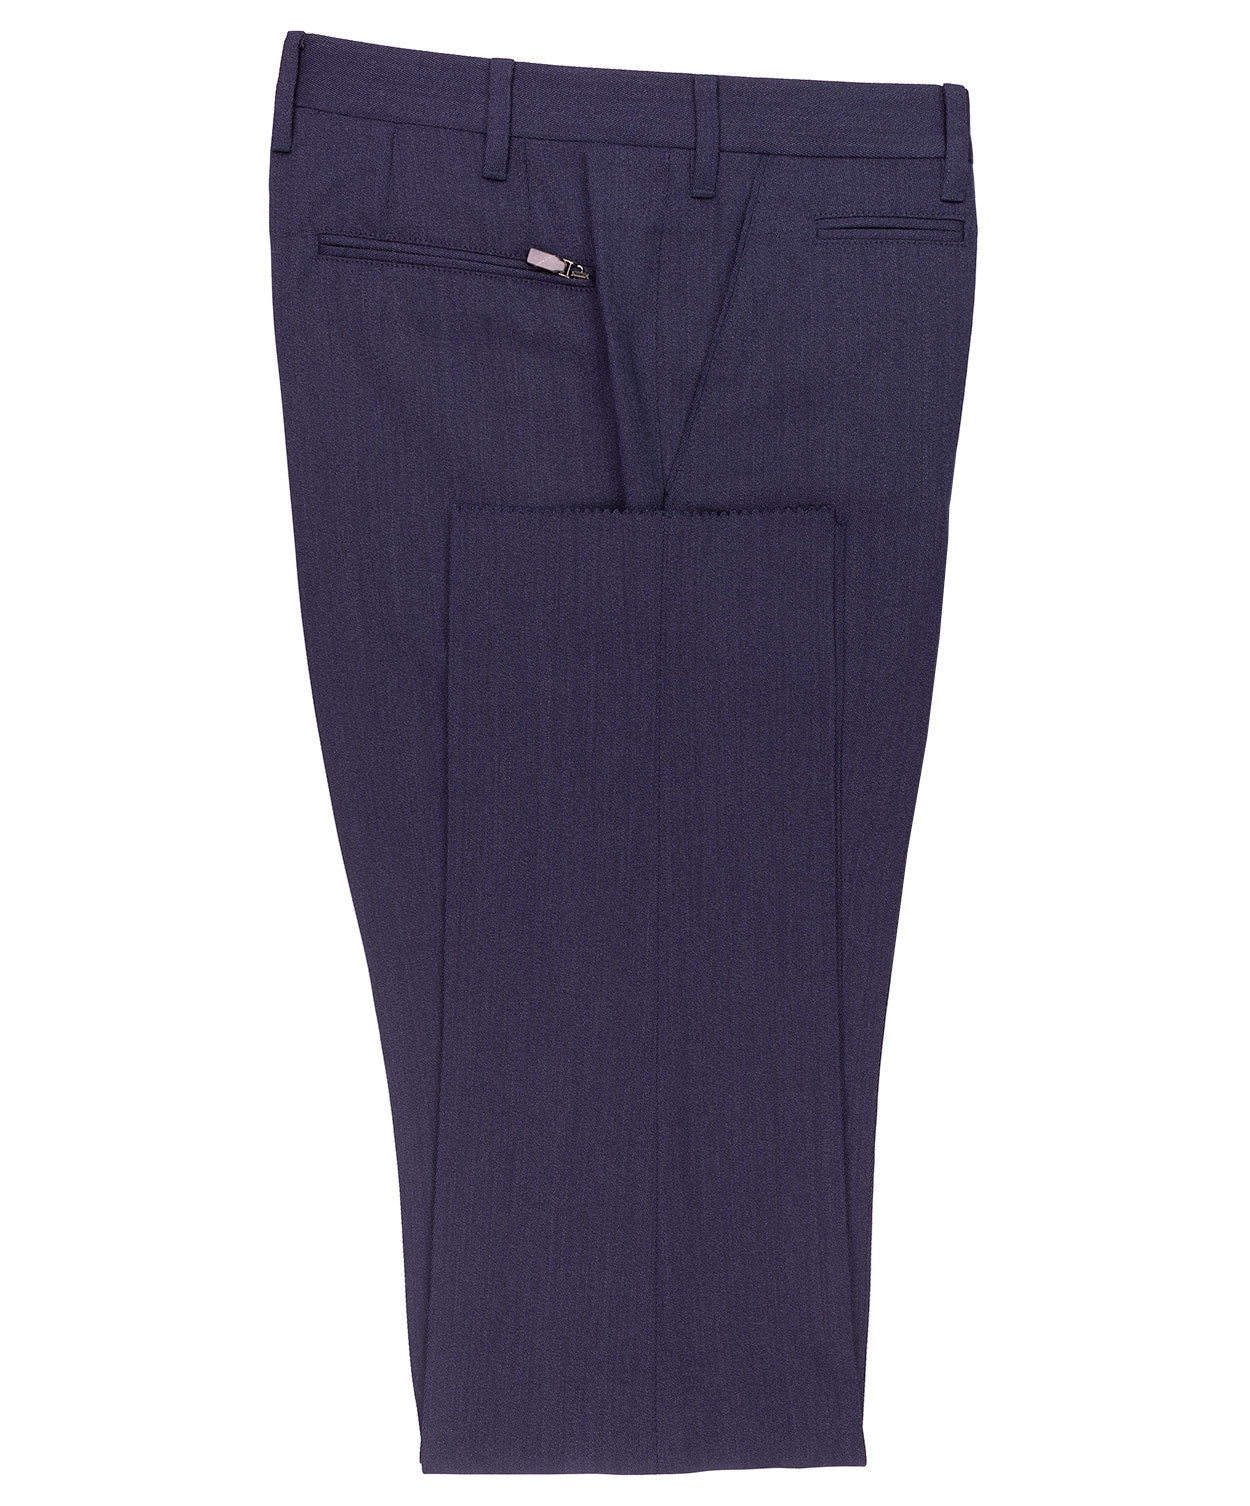 Academy Blue/Grey Textured Dress Pants